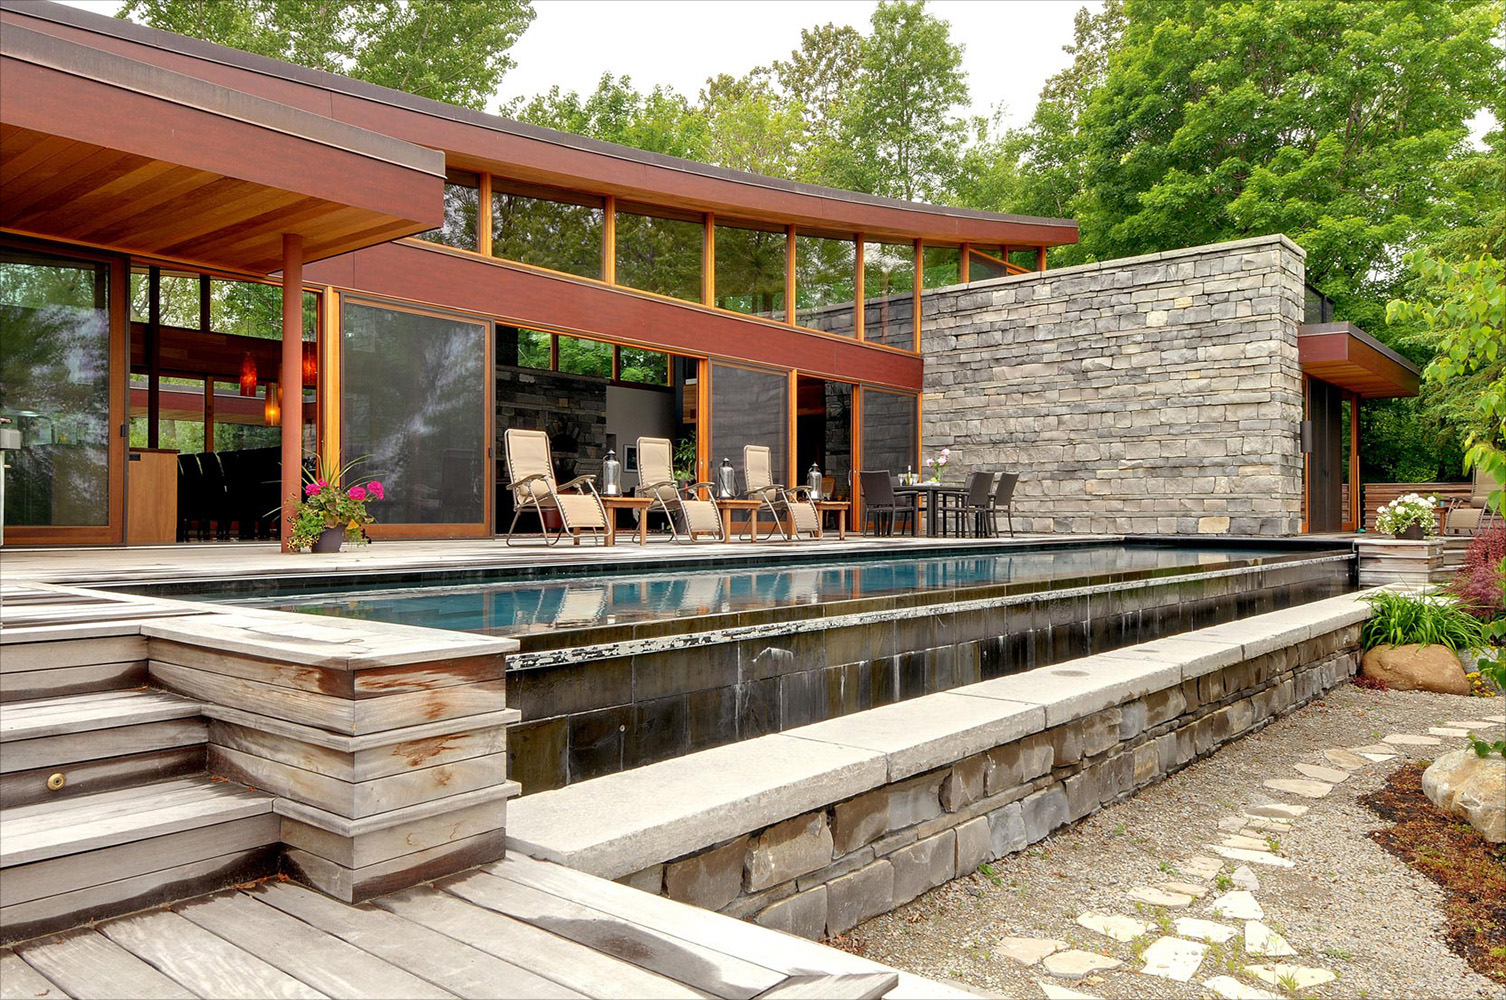 Ontario cottage outdoor deck with infinity pool set into a natural Ipe deck and large sliding doors into the cottage interior